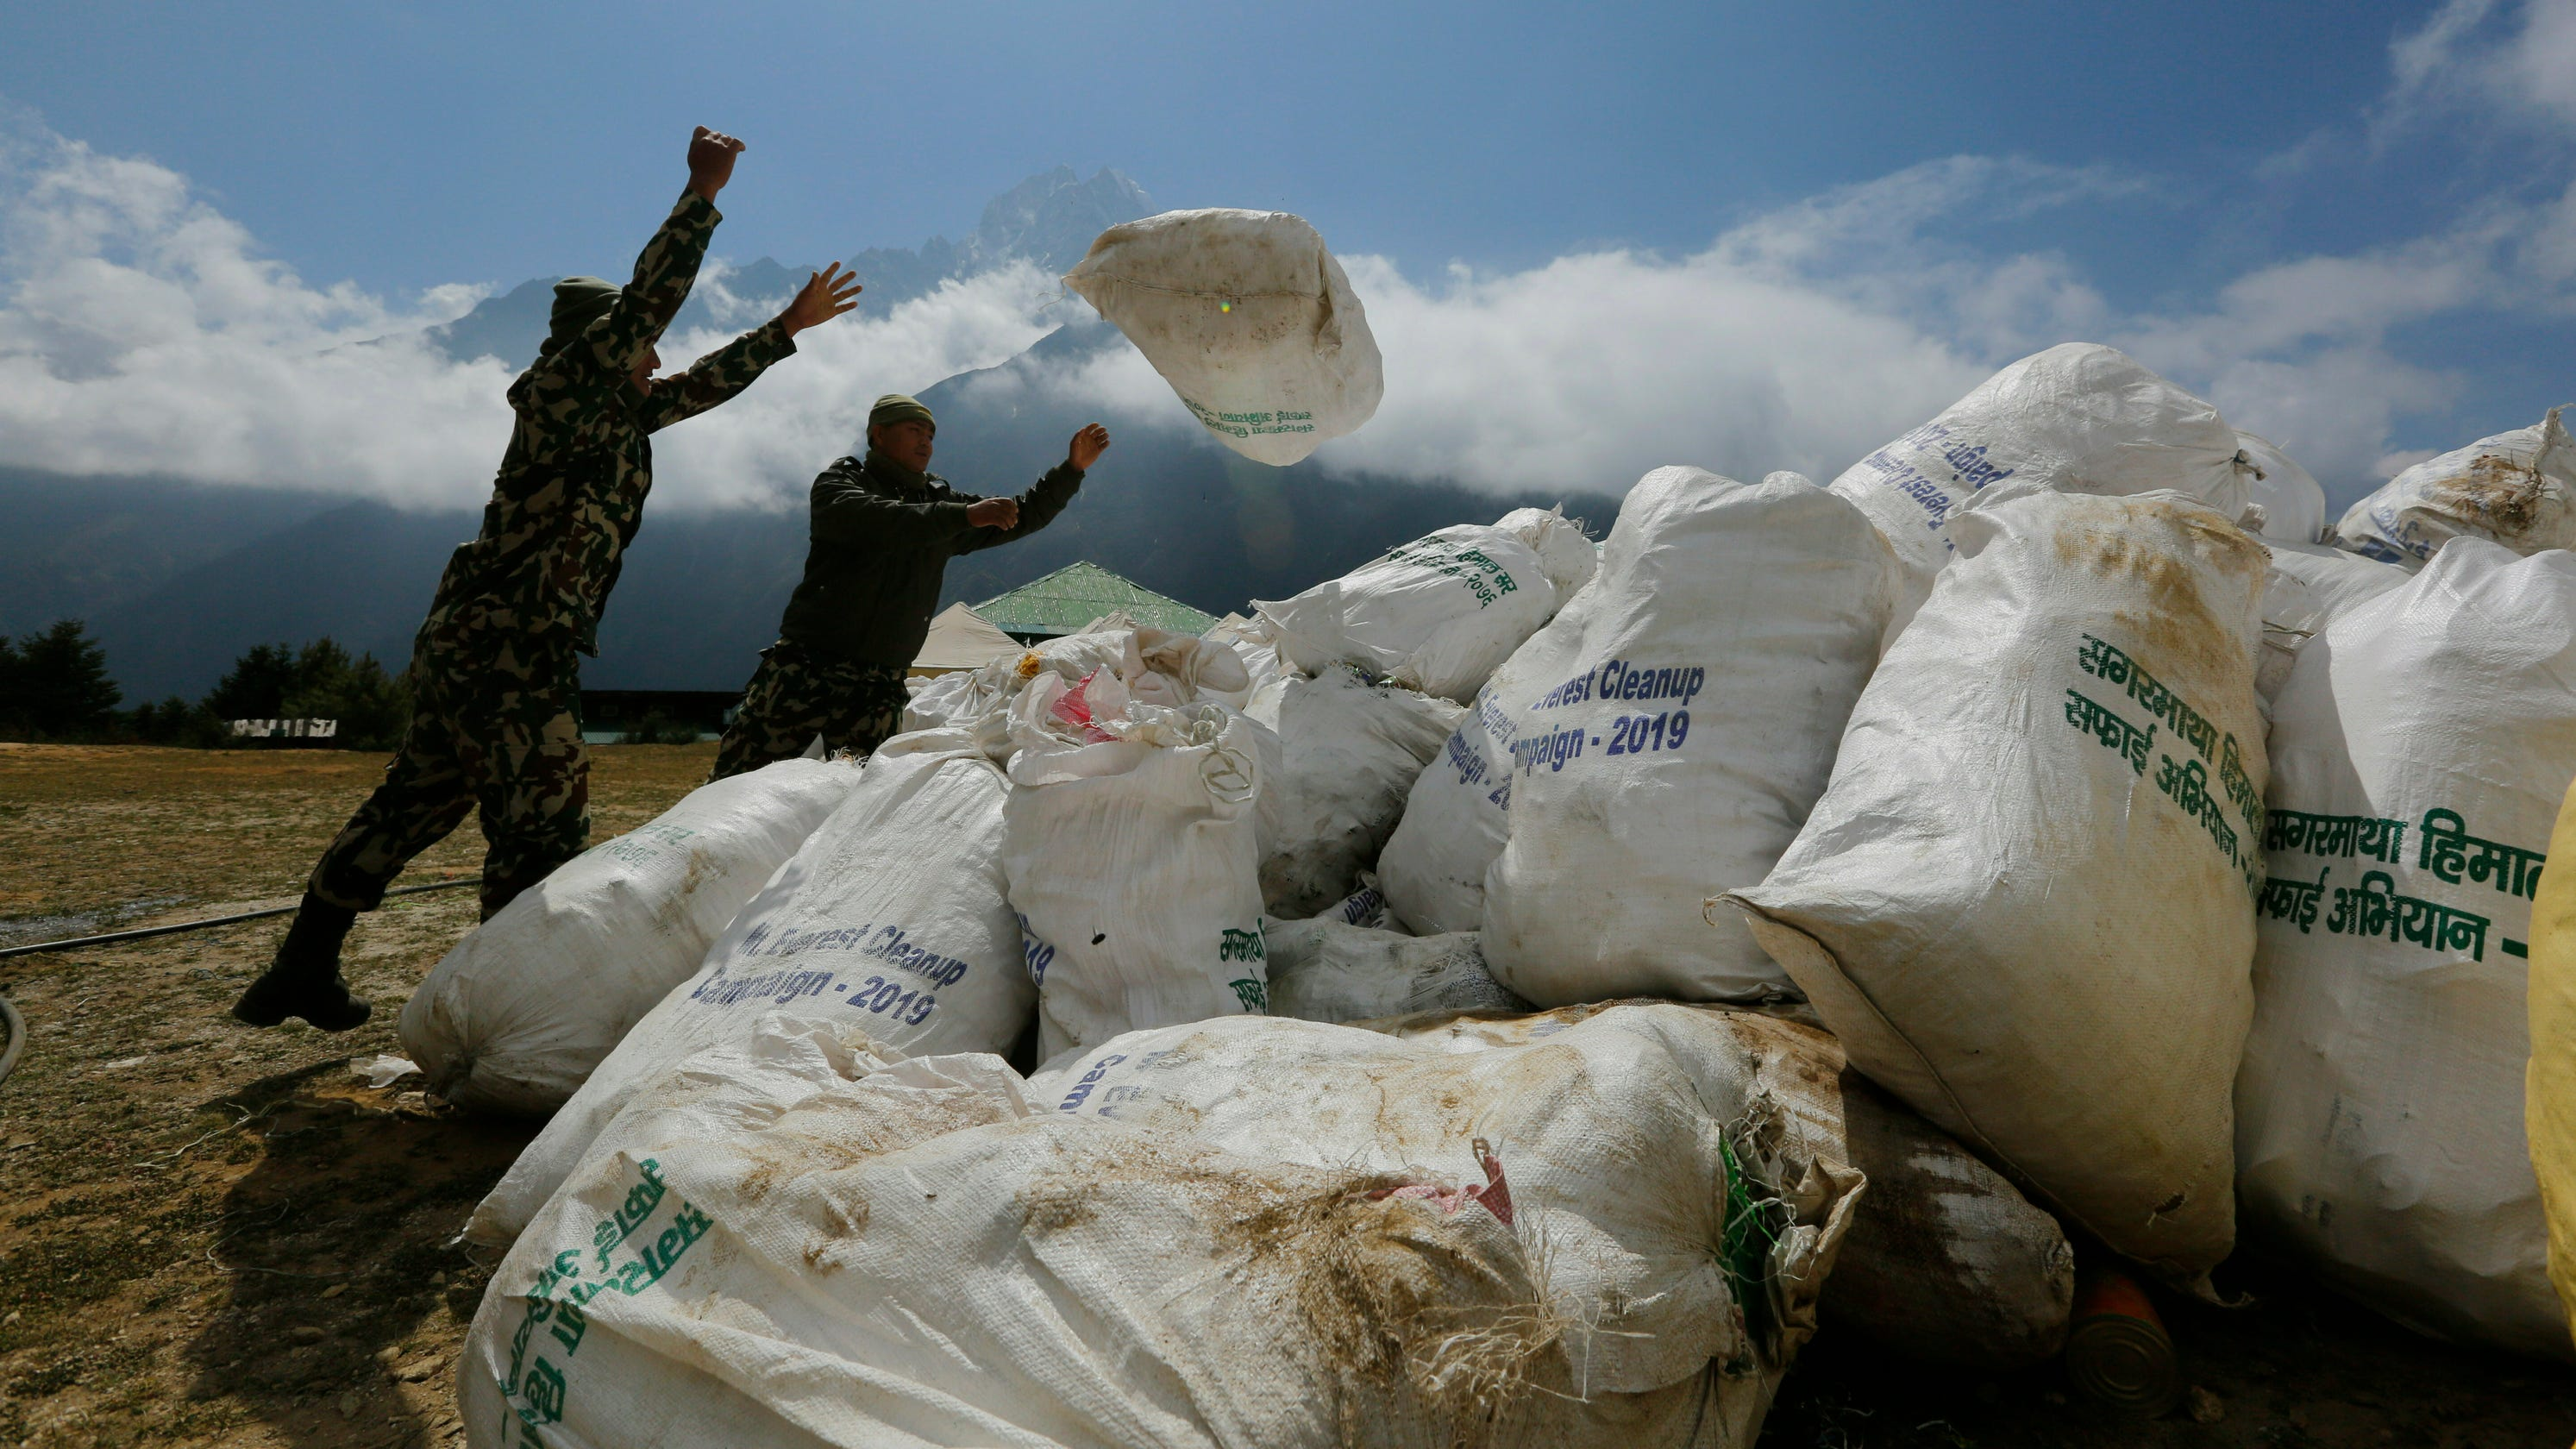 Mount Everest Cleanup Drive Yields Garbage, Bodies